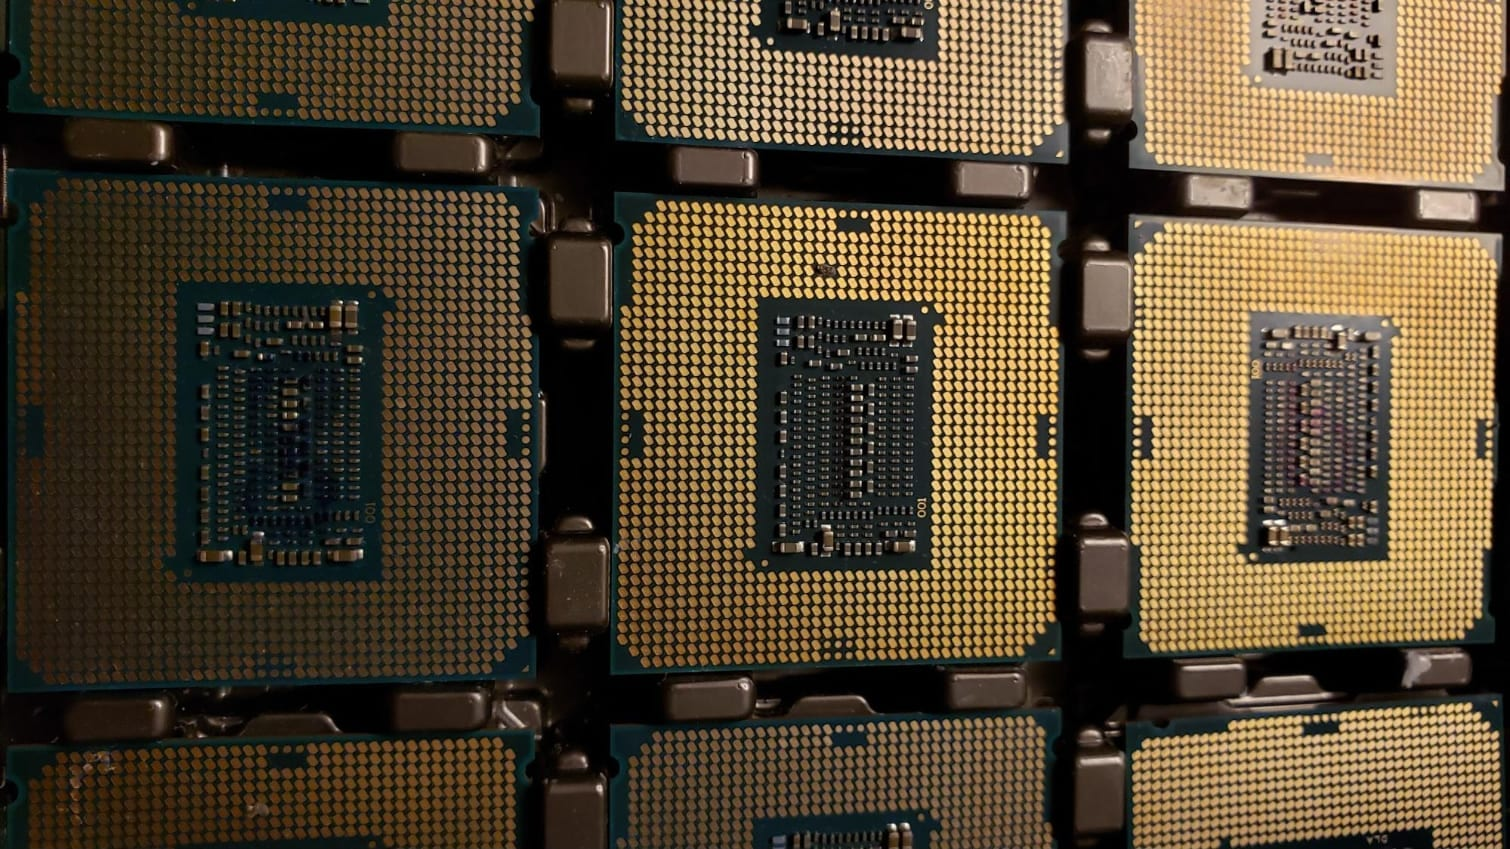 Intel Admits 14nm CPU Shortage Issues Still Not Resolved; Puts Blame on Market Growth